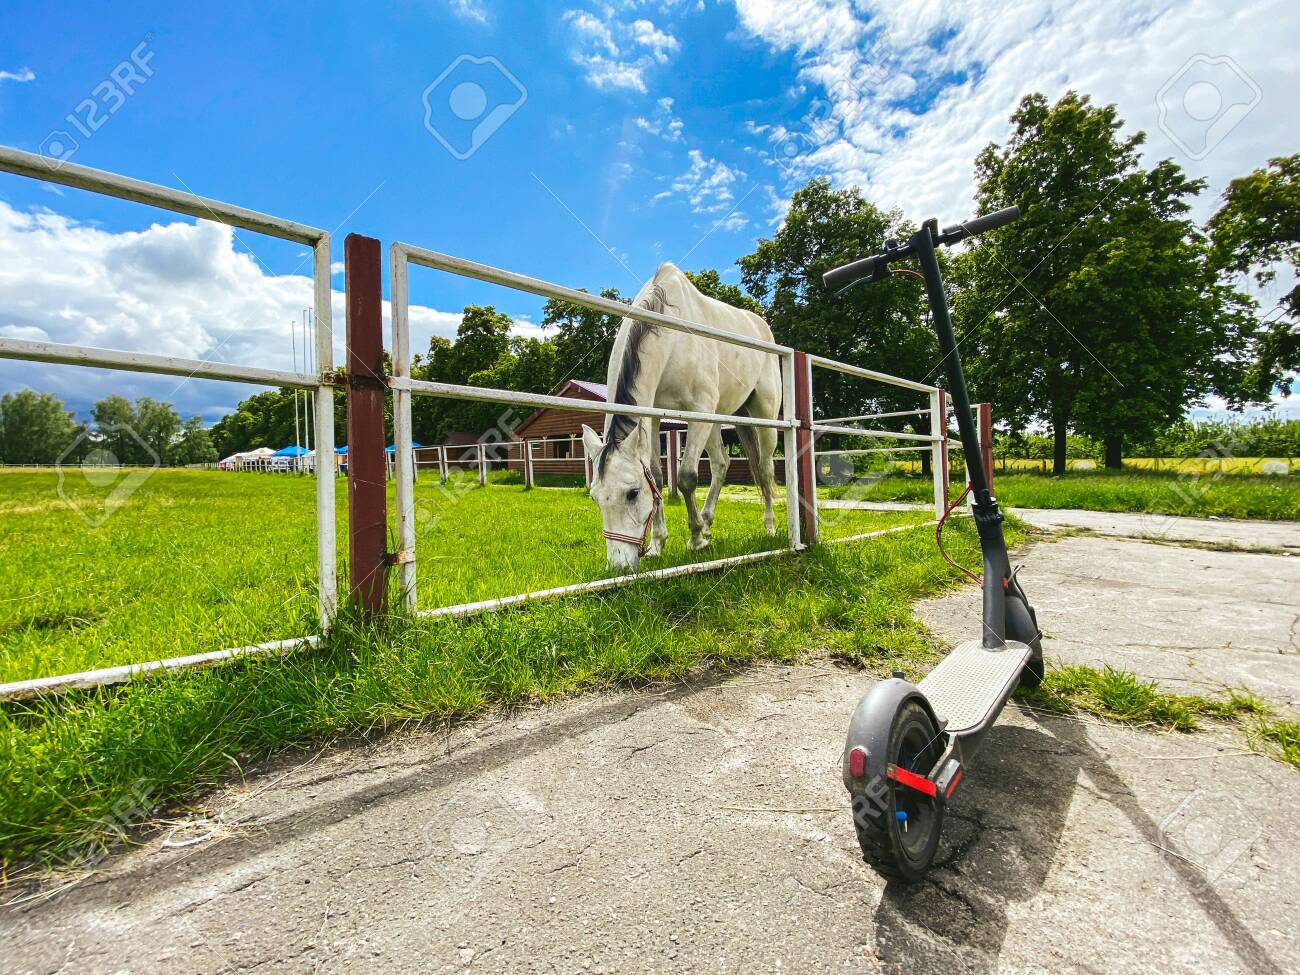 Horse in the arena. In the stall is a beautiful white horse. An electric scooter is parked near the horse arena. Animal and electric transport. Past and future are near. Eco friendly mobility concept. - 148838373